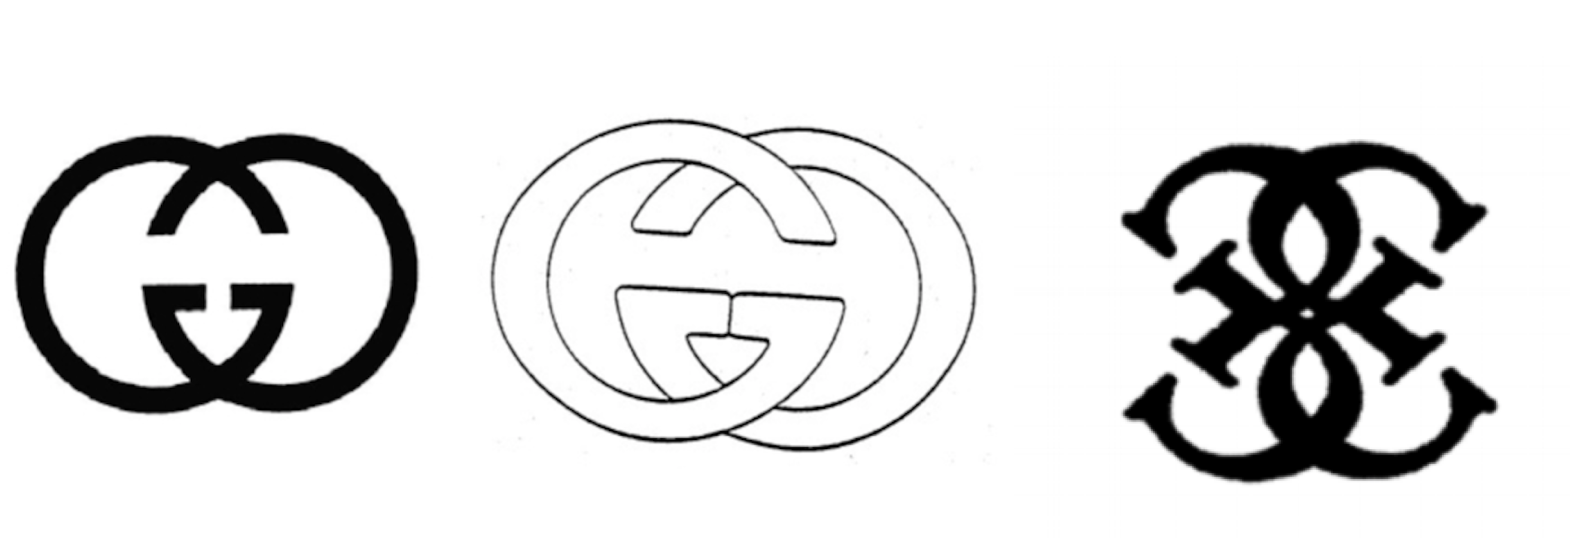 Gucci's logos (left and center) & Guess' logo (right)